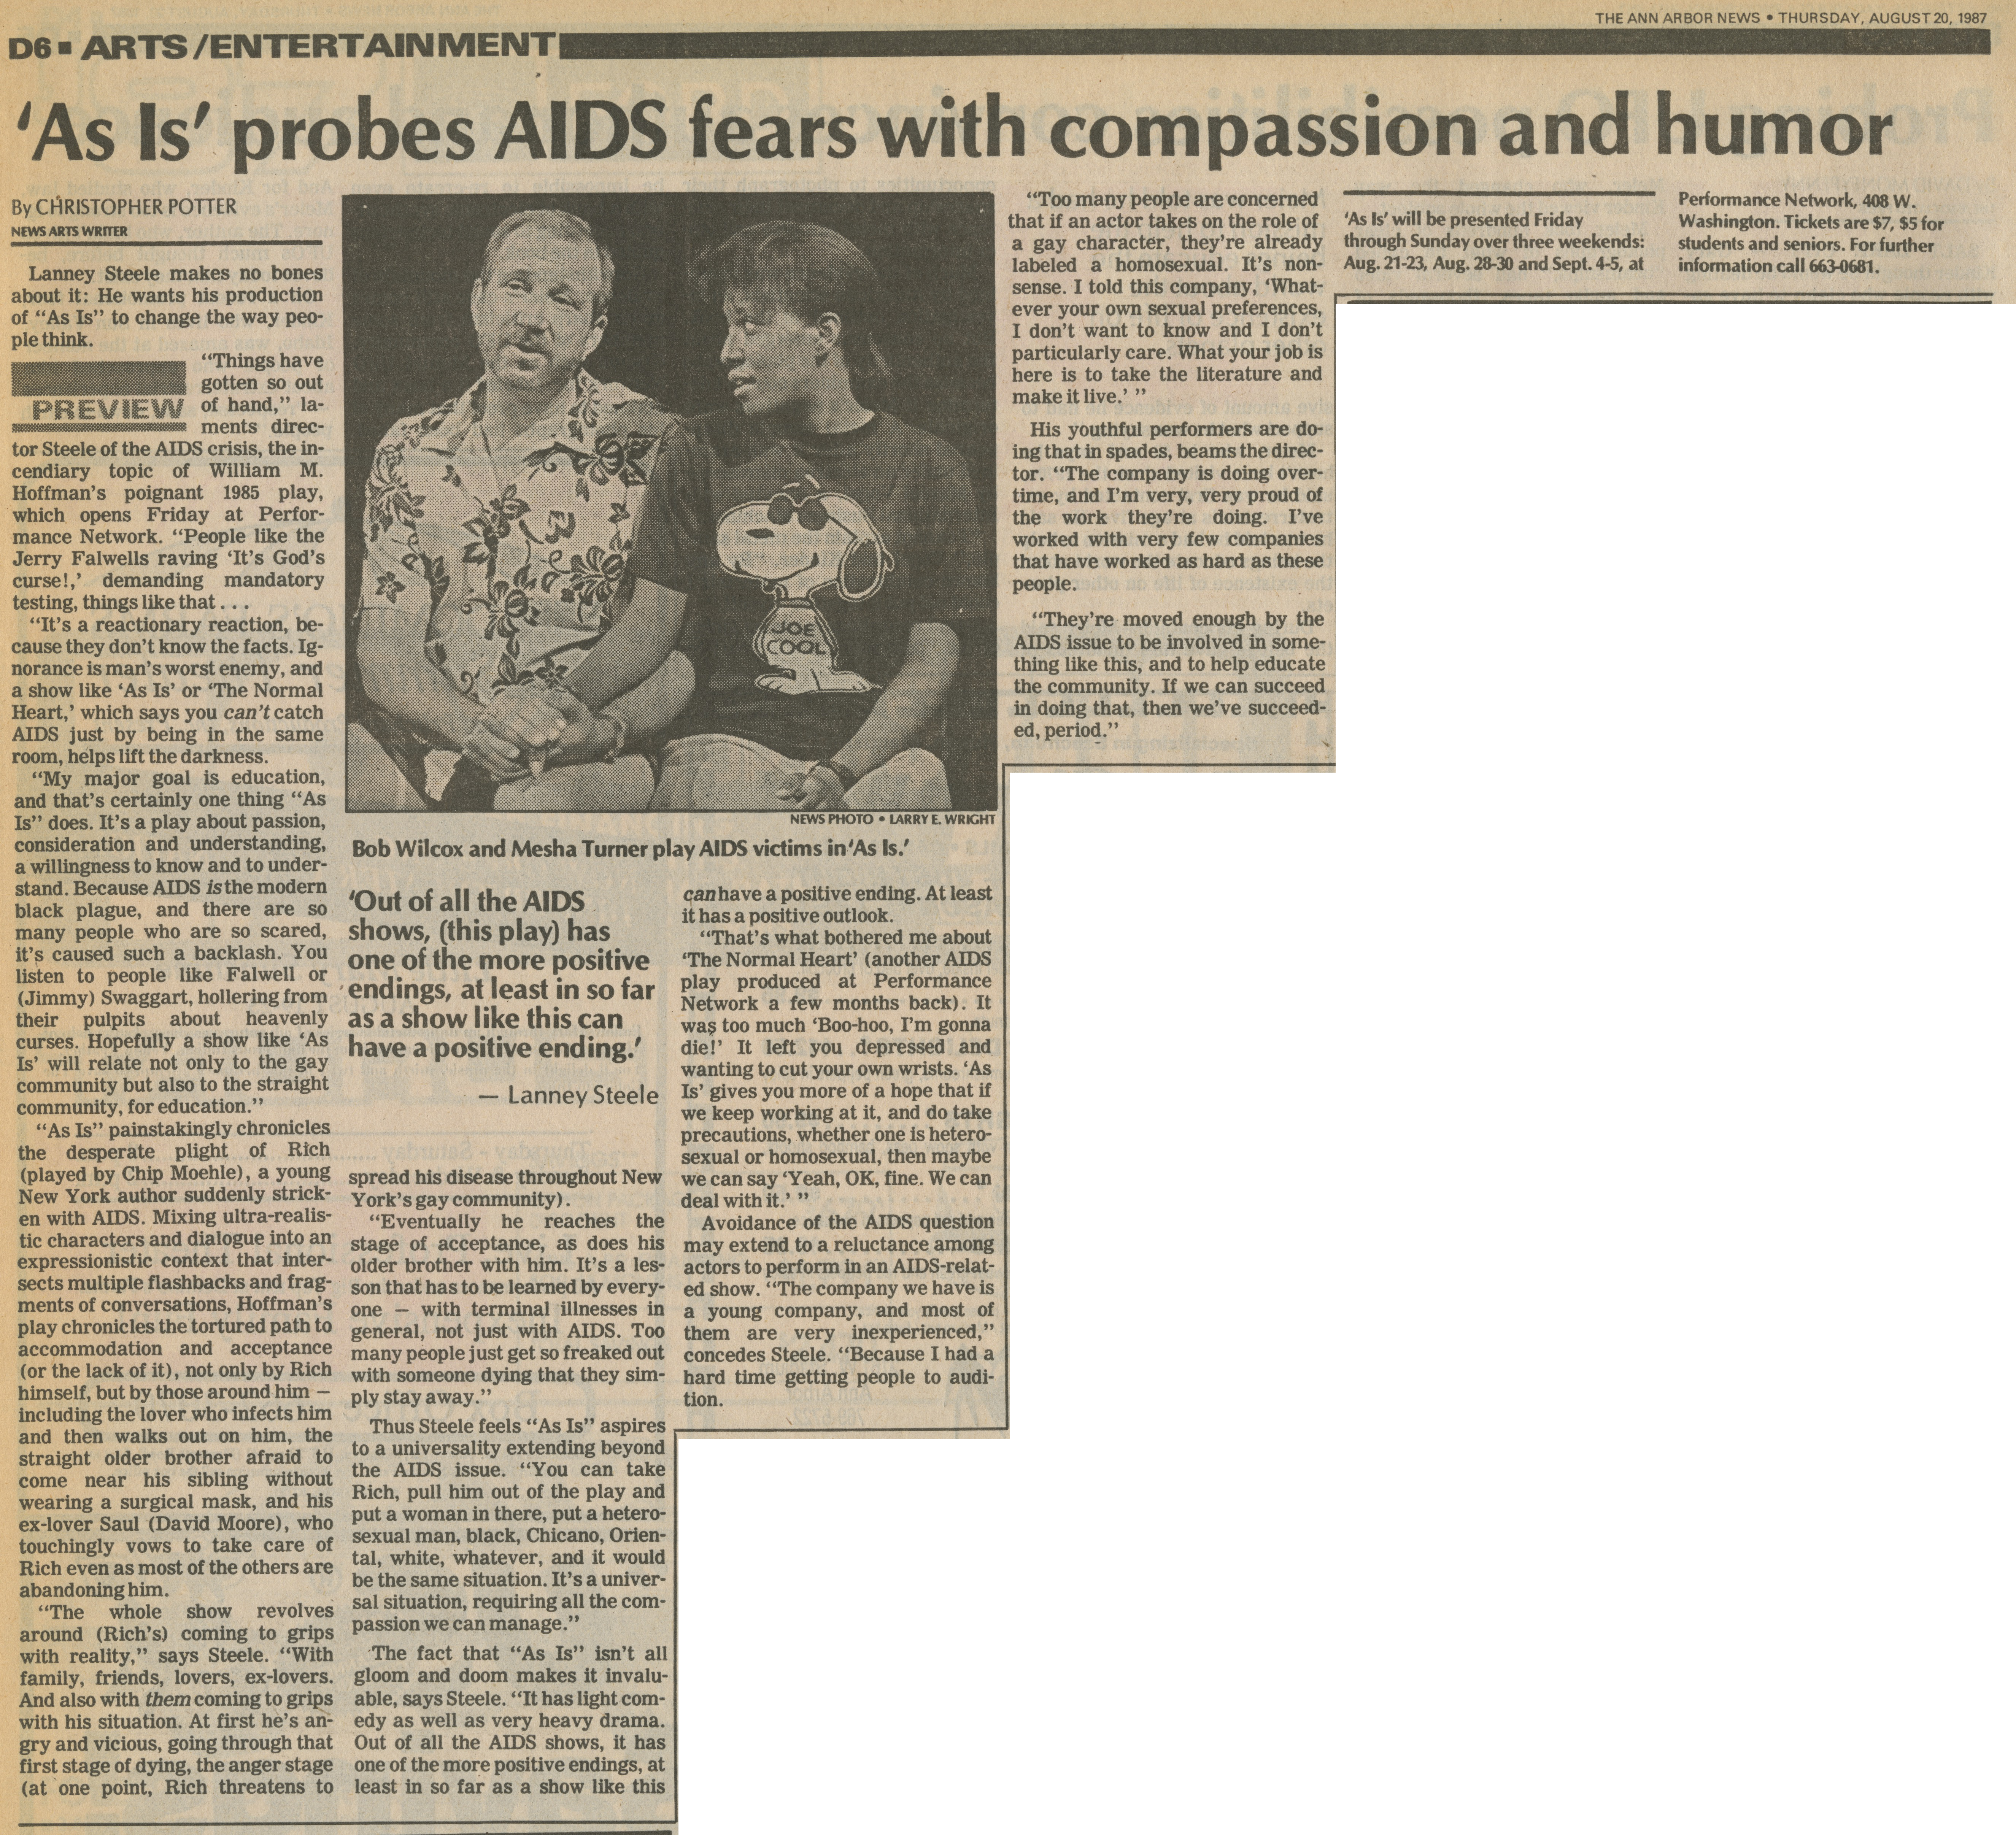 'As Is' probes AIDS fears with compassion and humor image